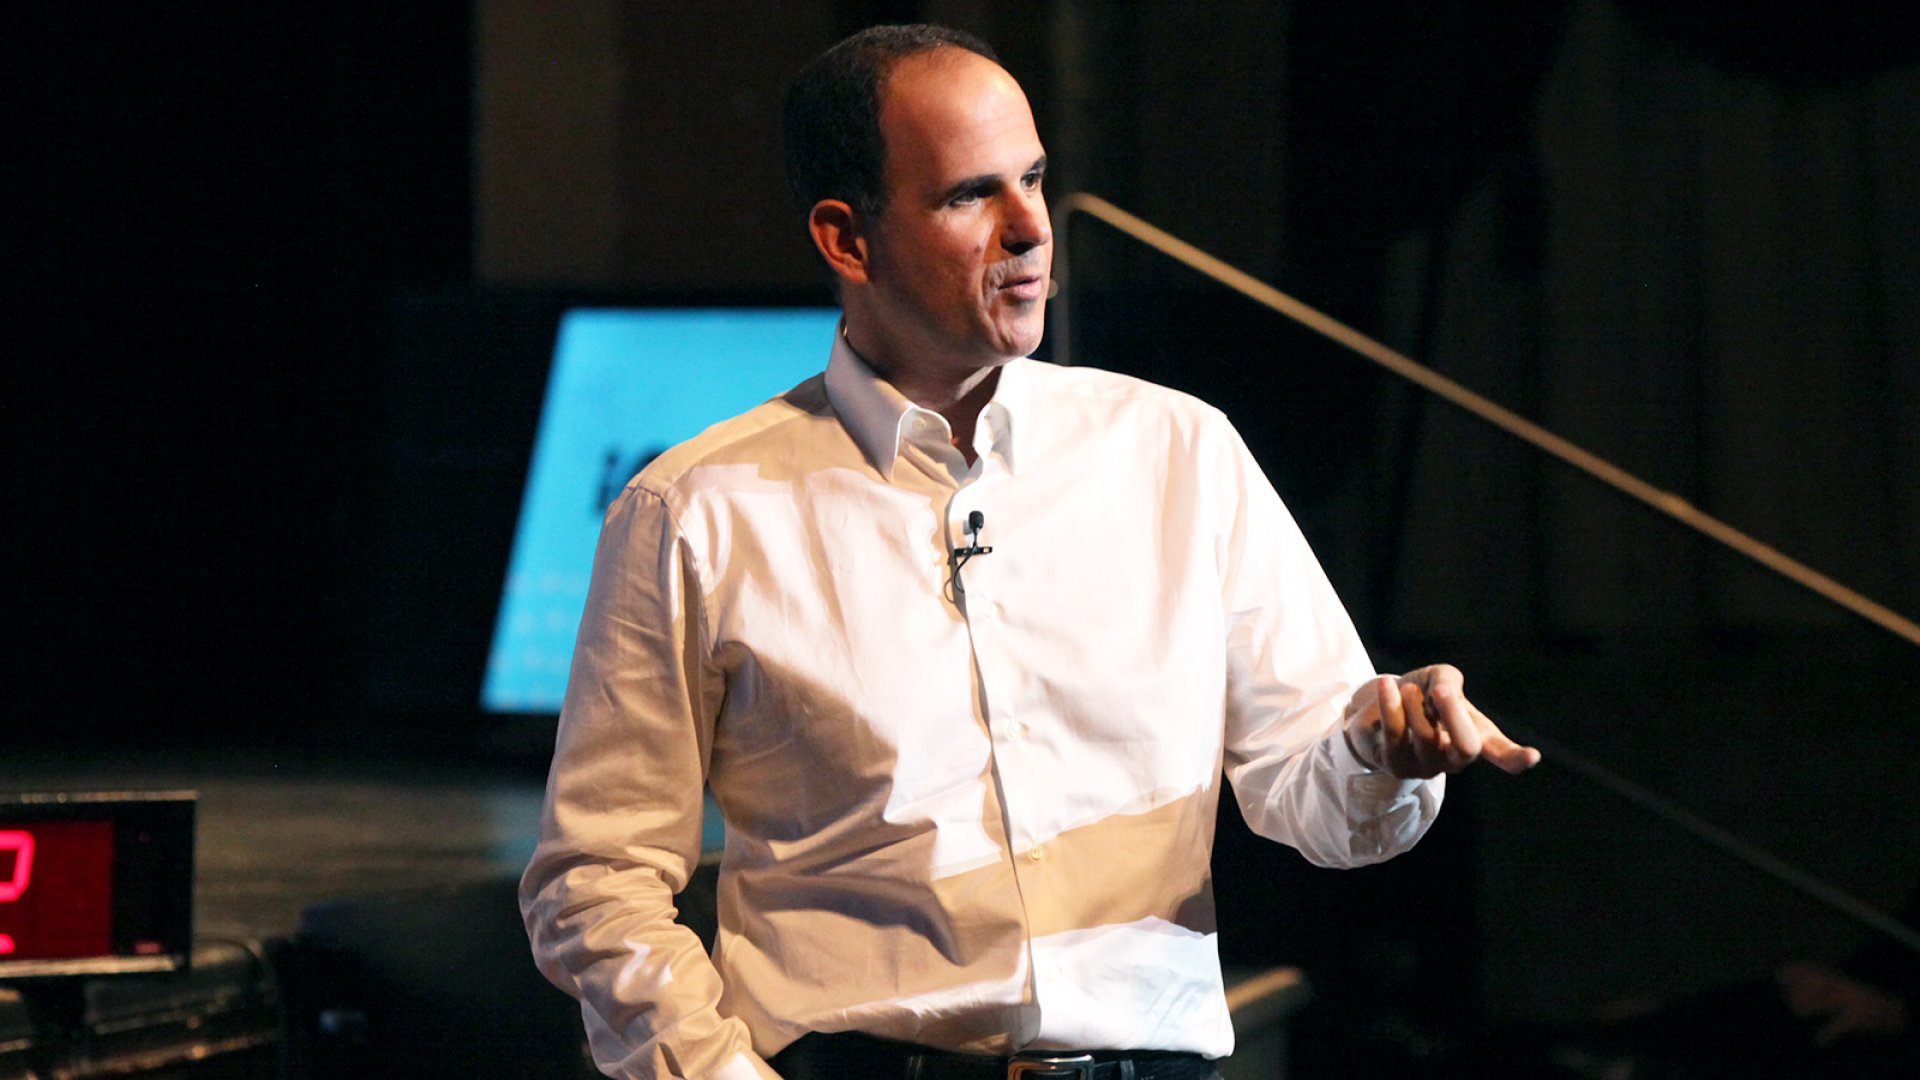 Marcus Lemonis: Using Vulnerability as a Business Strategy